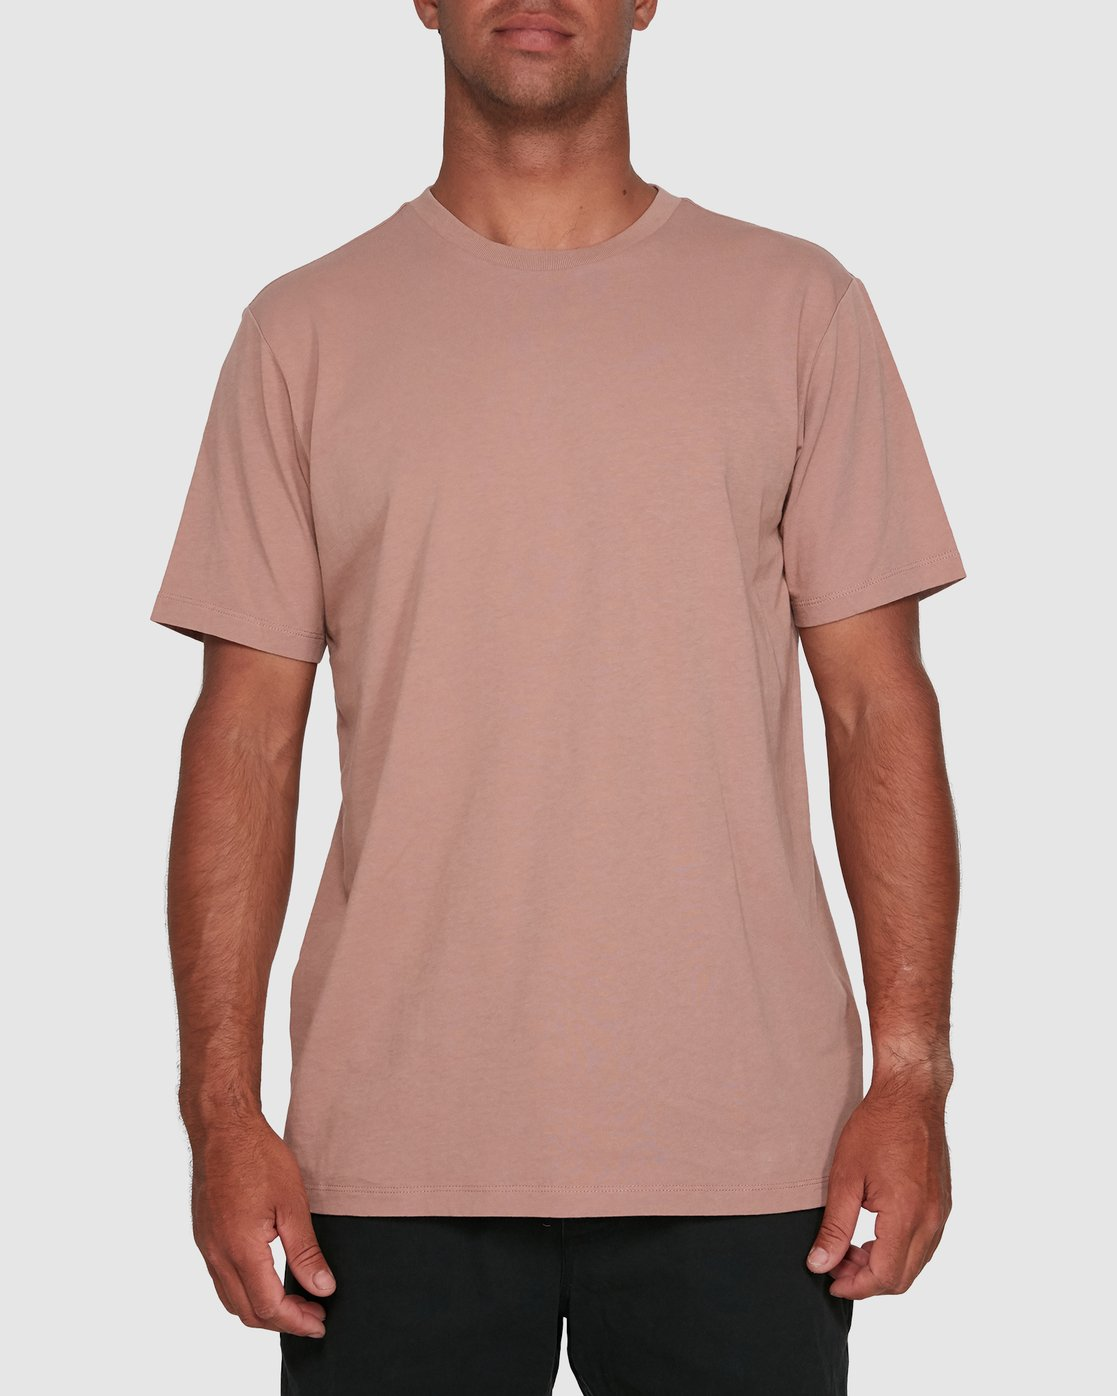 0 Rvca Washed Short Sleeve Tee Pink R105050 RVCA